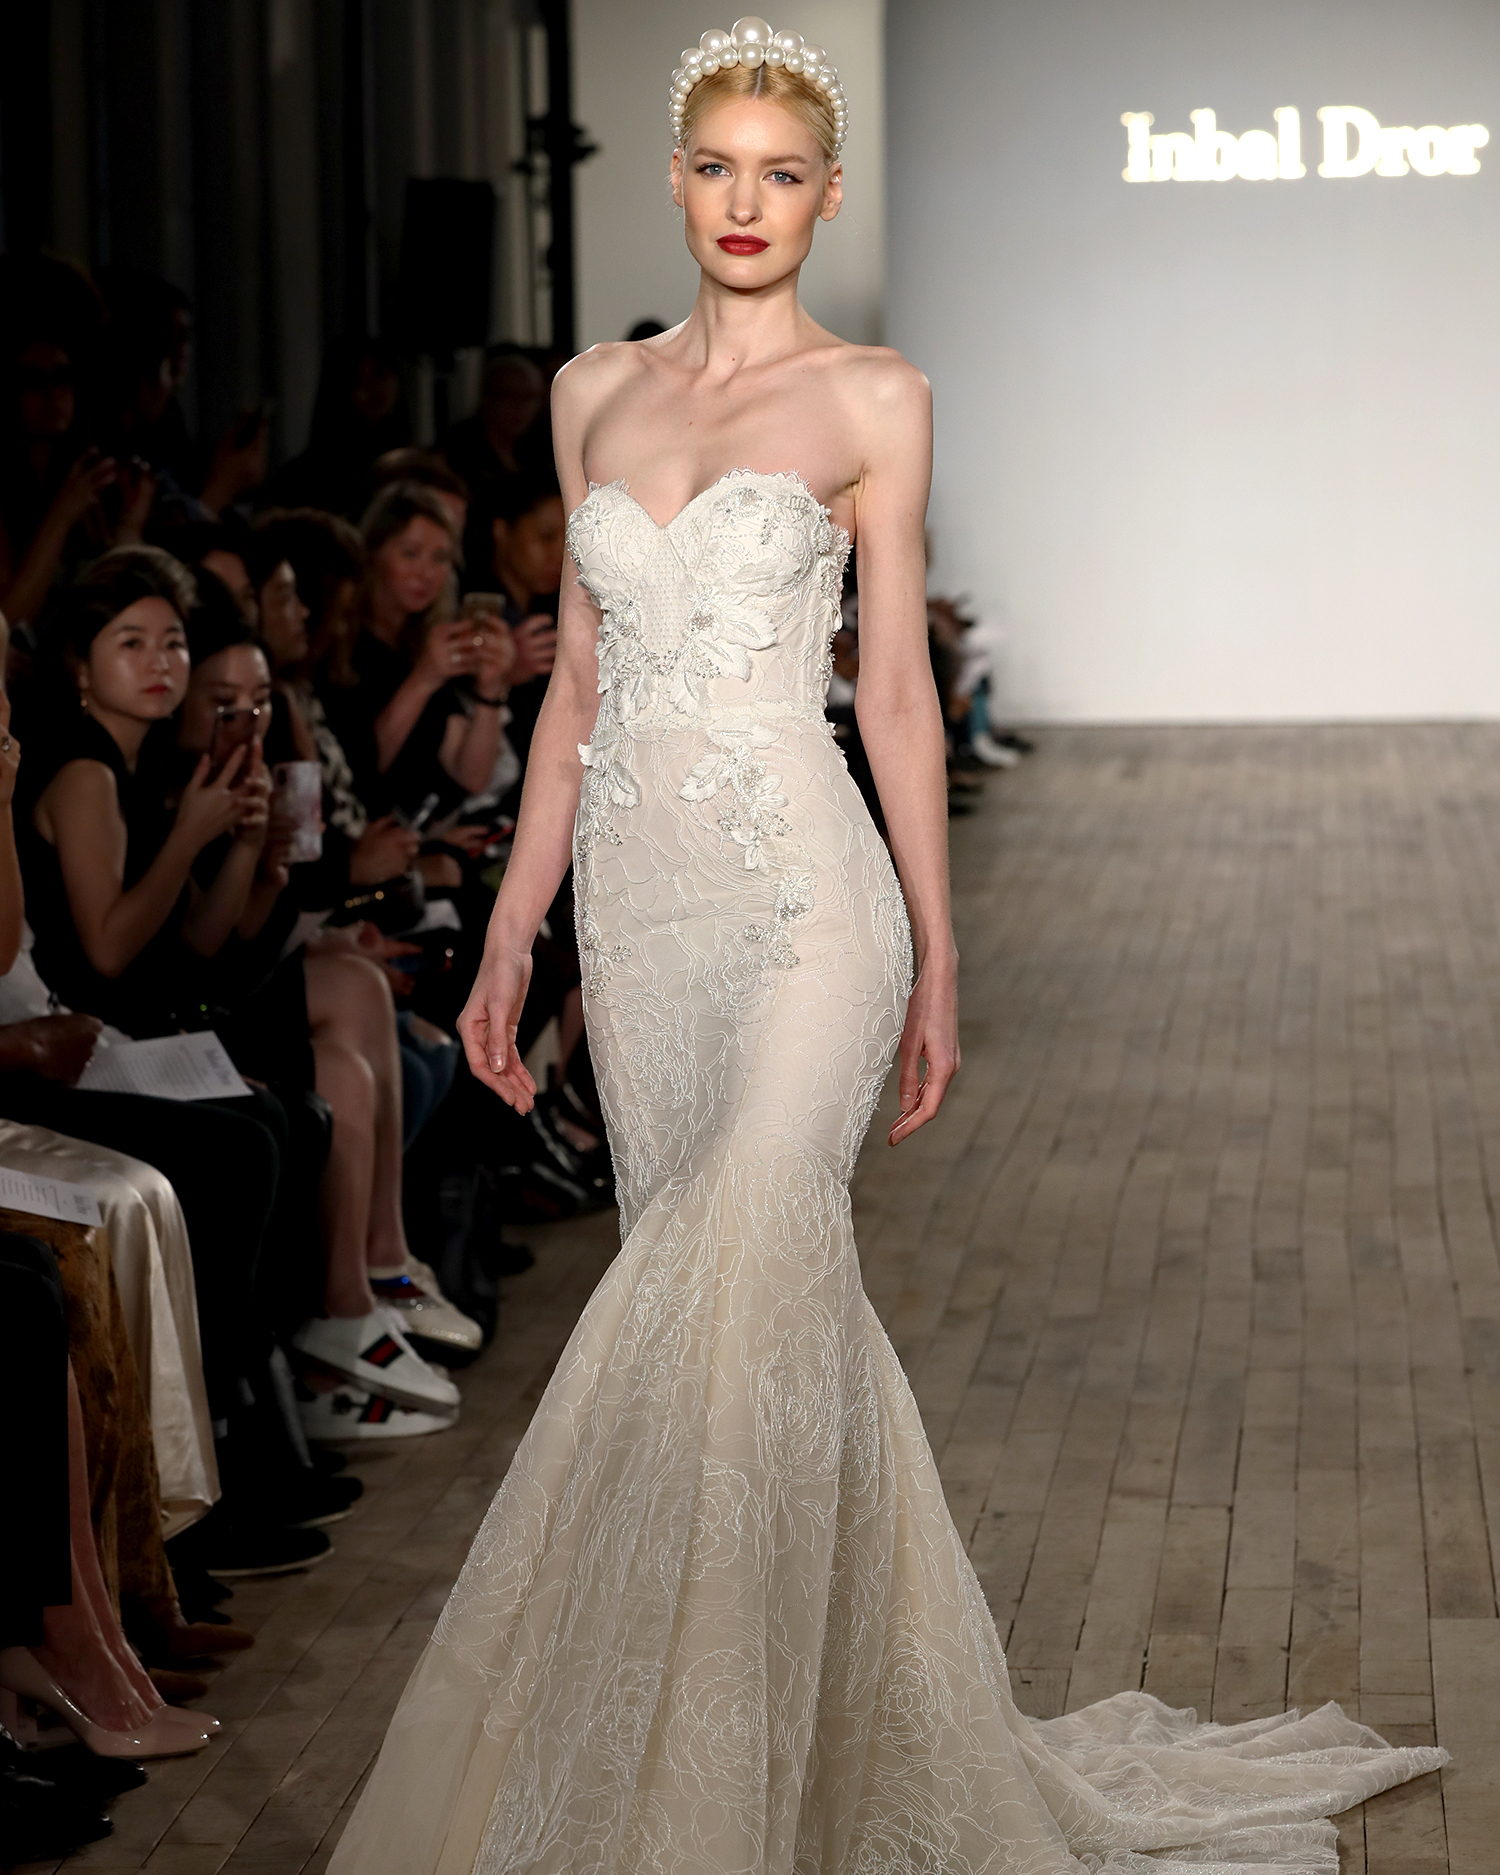 inbal dror wedding dress structured mermaid with embroidered bodice